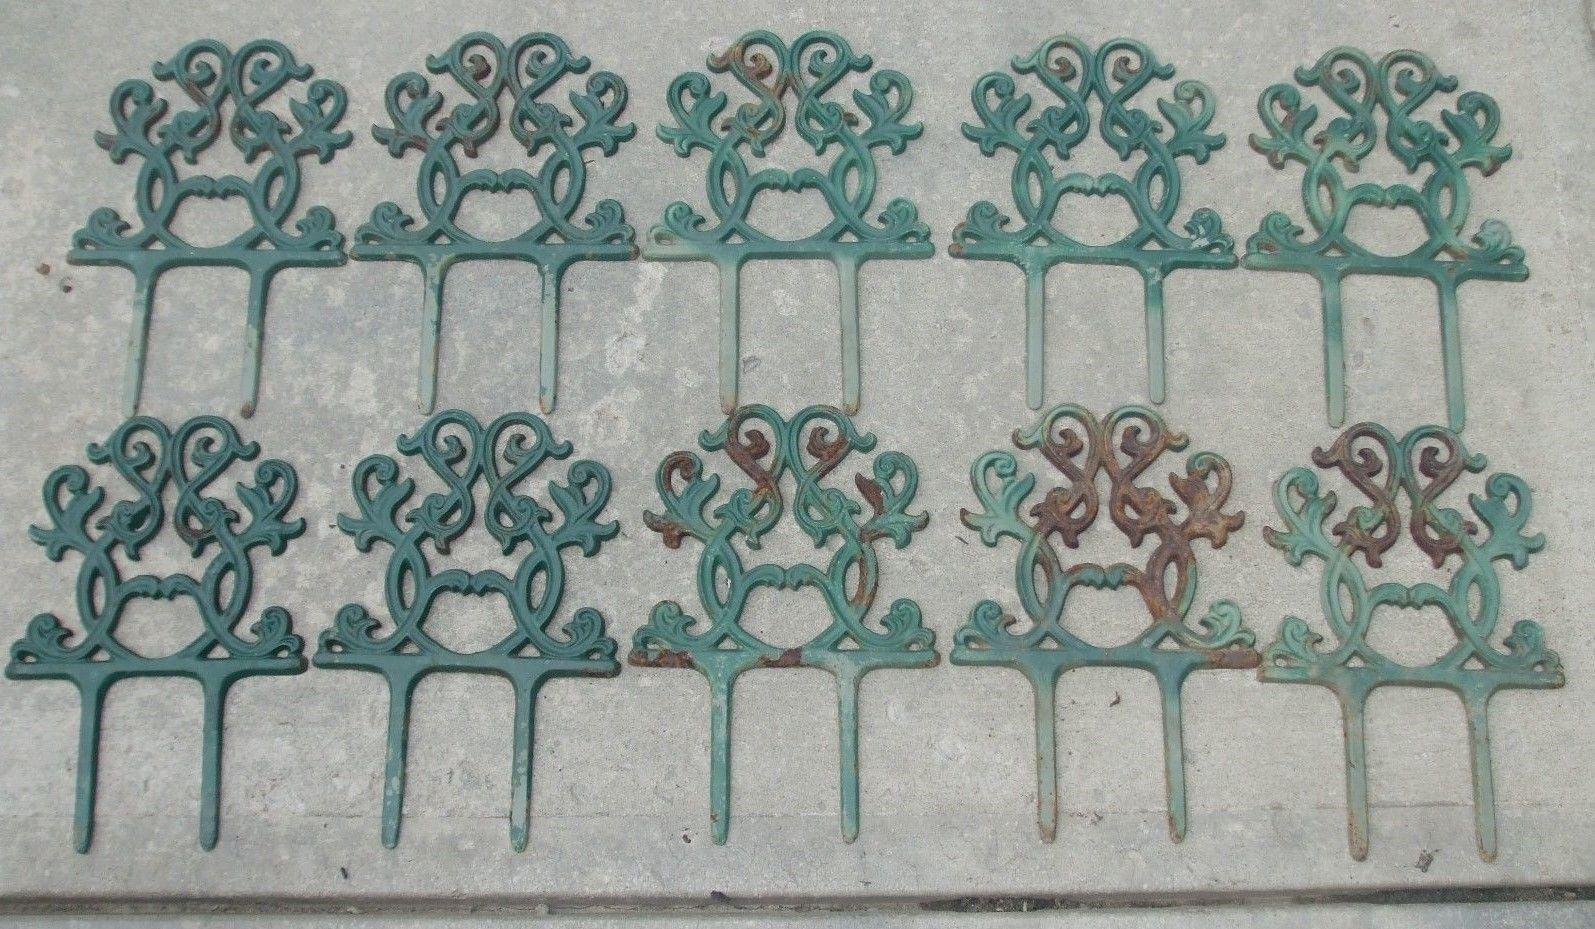 10 Vintage Cast Iron Garden Walk Fence Edging 8 Lengths The Old